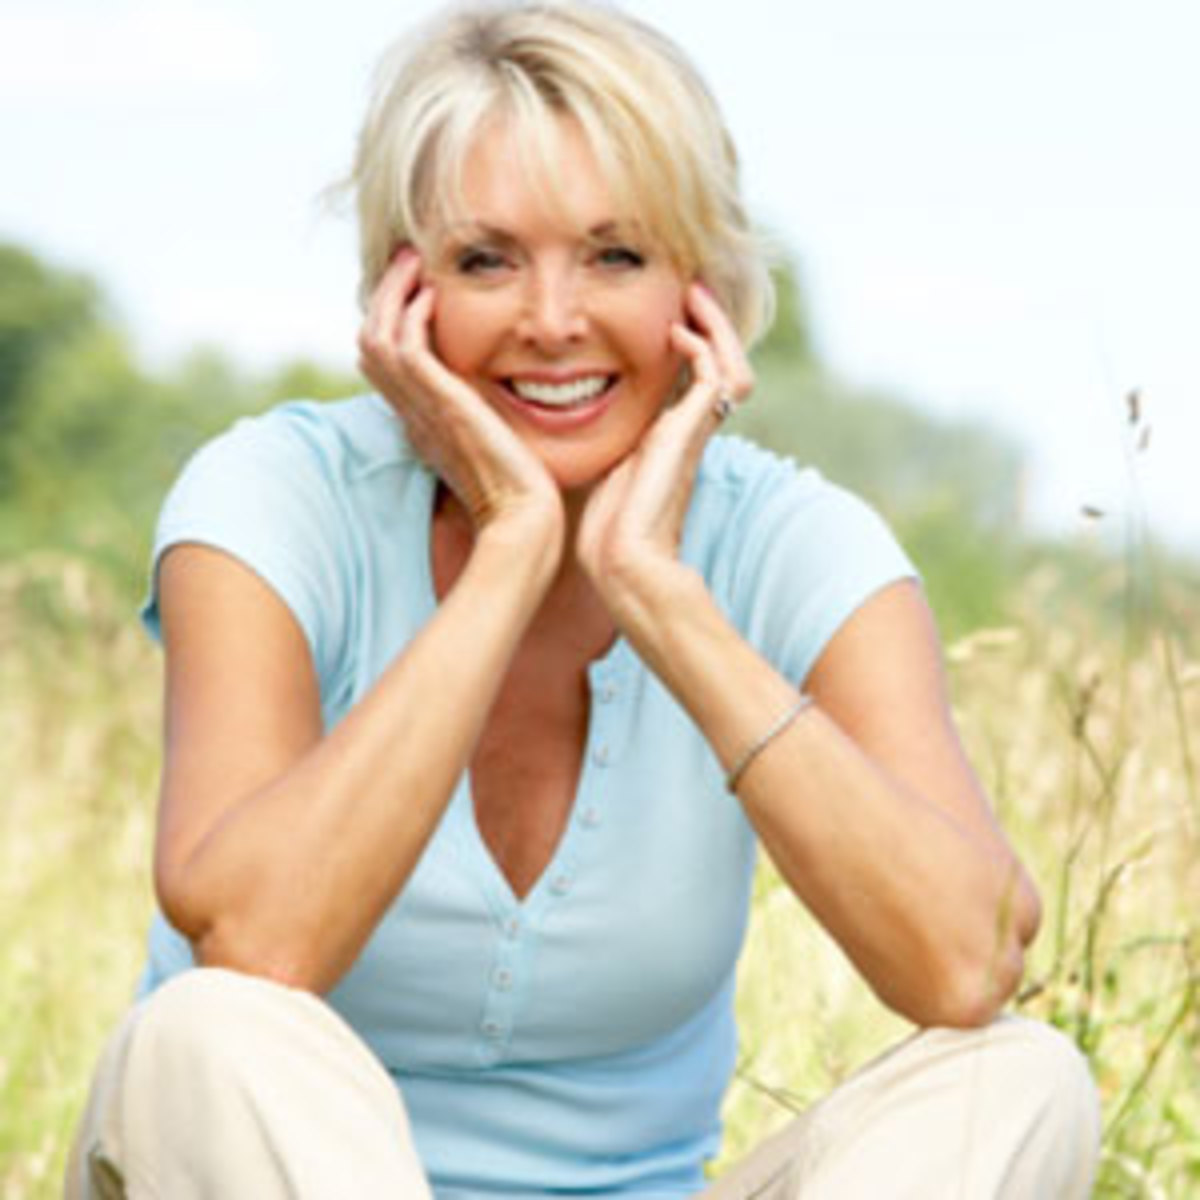 A woman of menopausal age